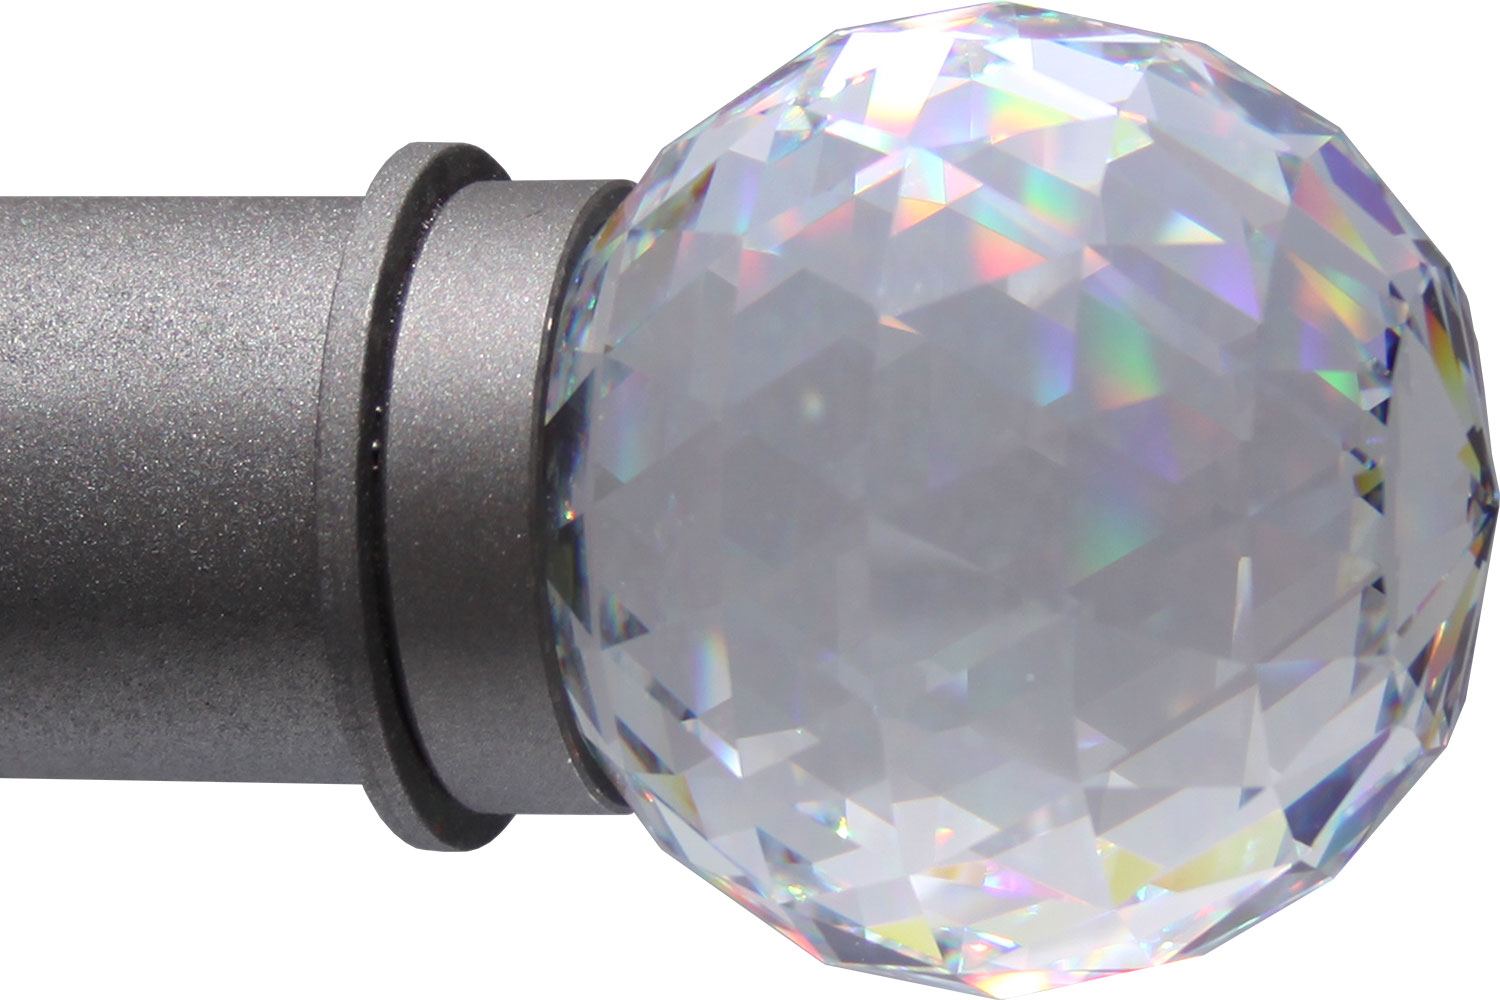 Large Crystal Ball finial